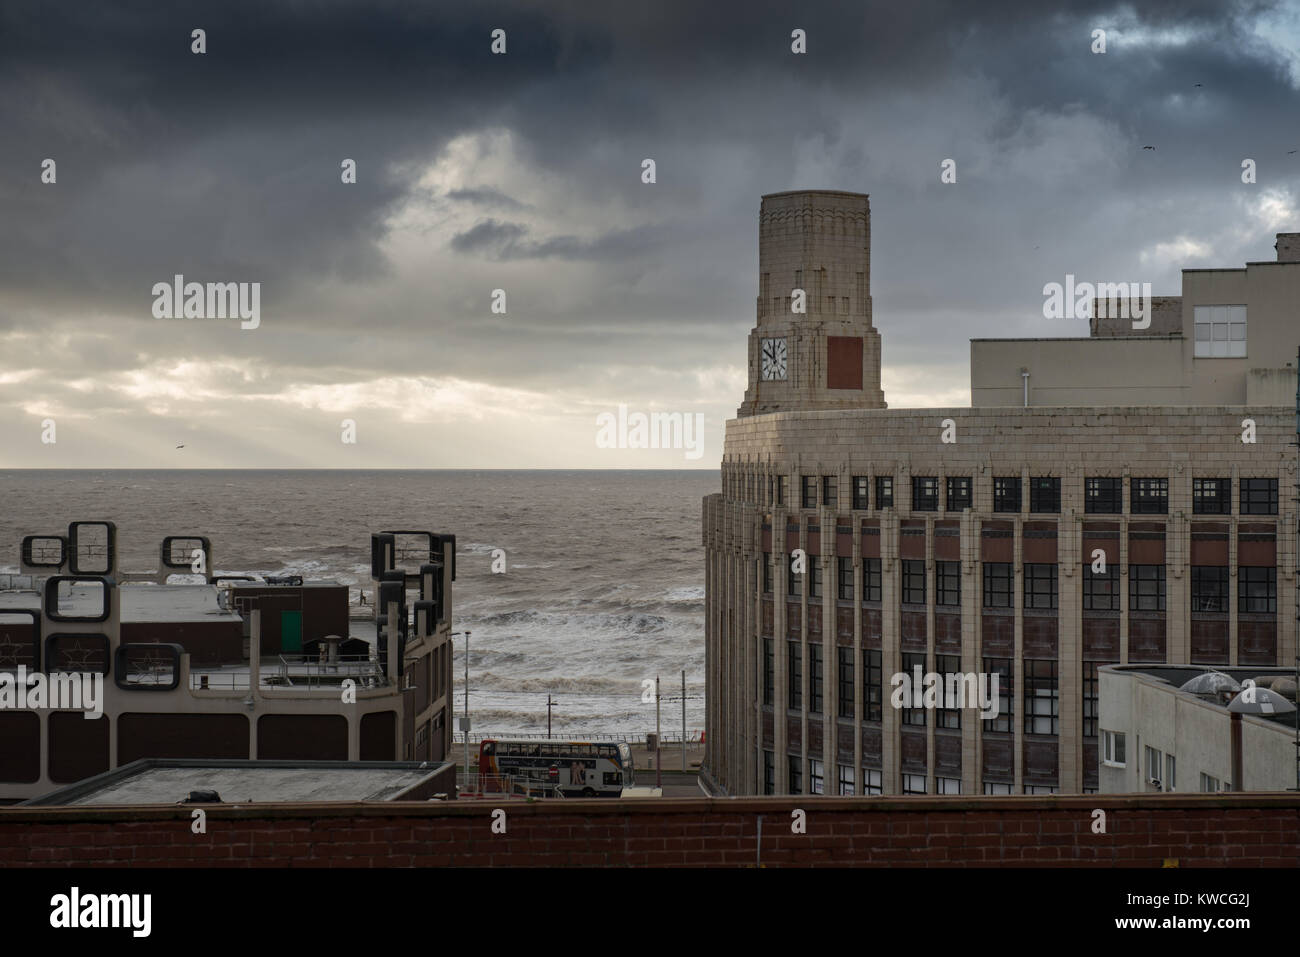 Old Woolworths building Blackpool with dramatic sky Stock Photo